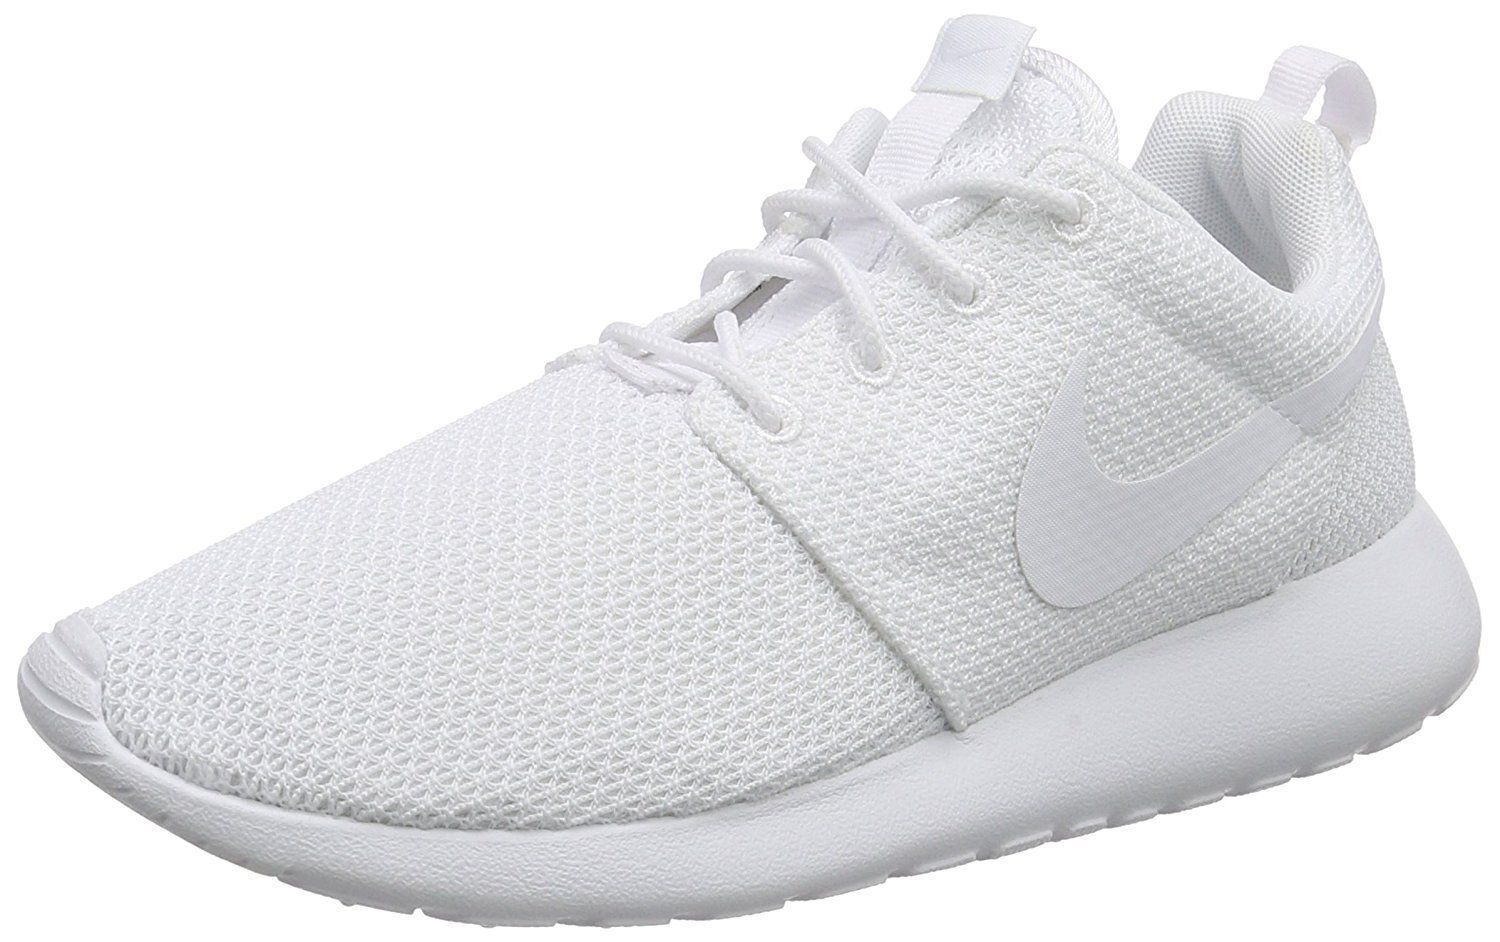 Men's Nike Roshe One Running shoes White White Sizes 8-12 New In Box 511881-112